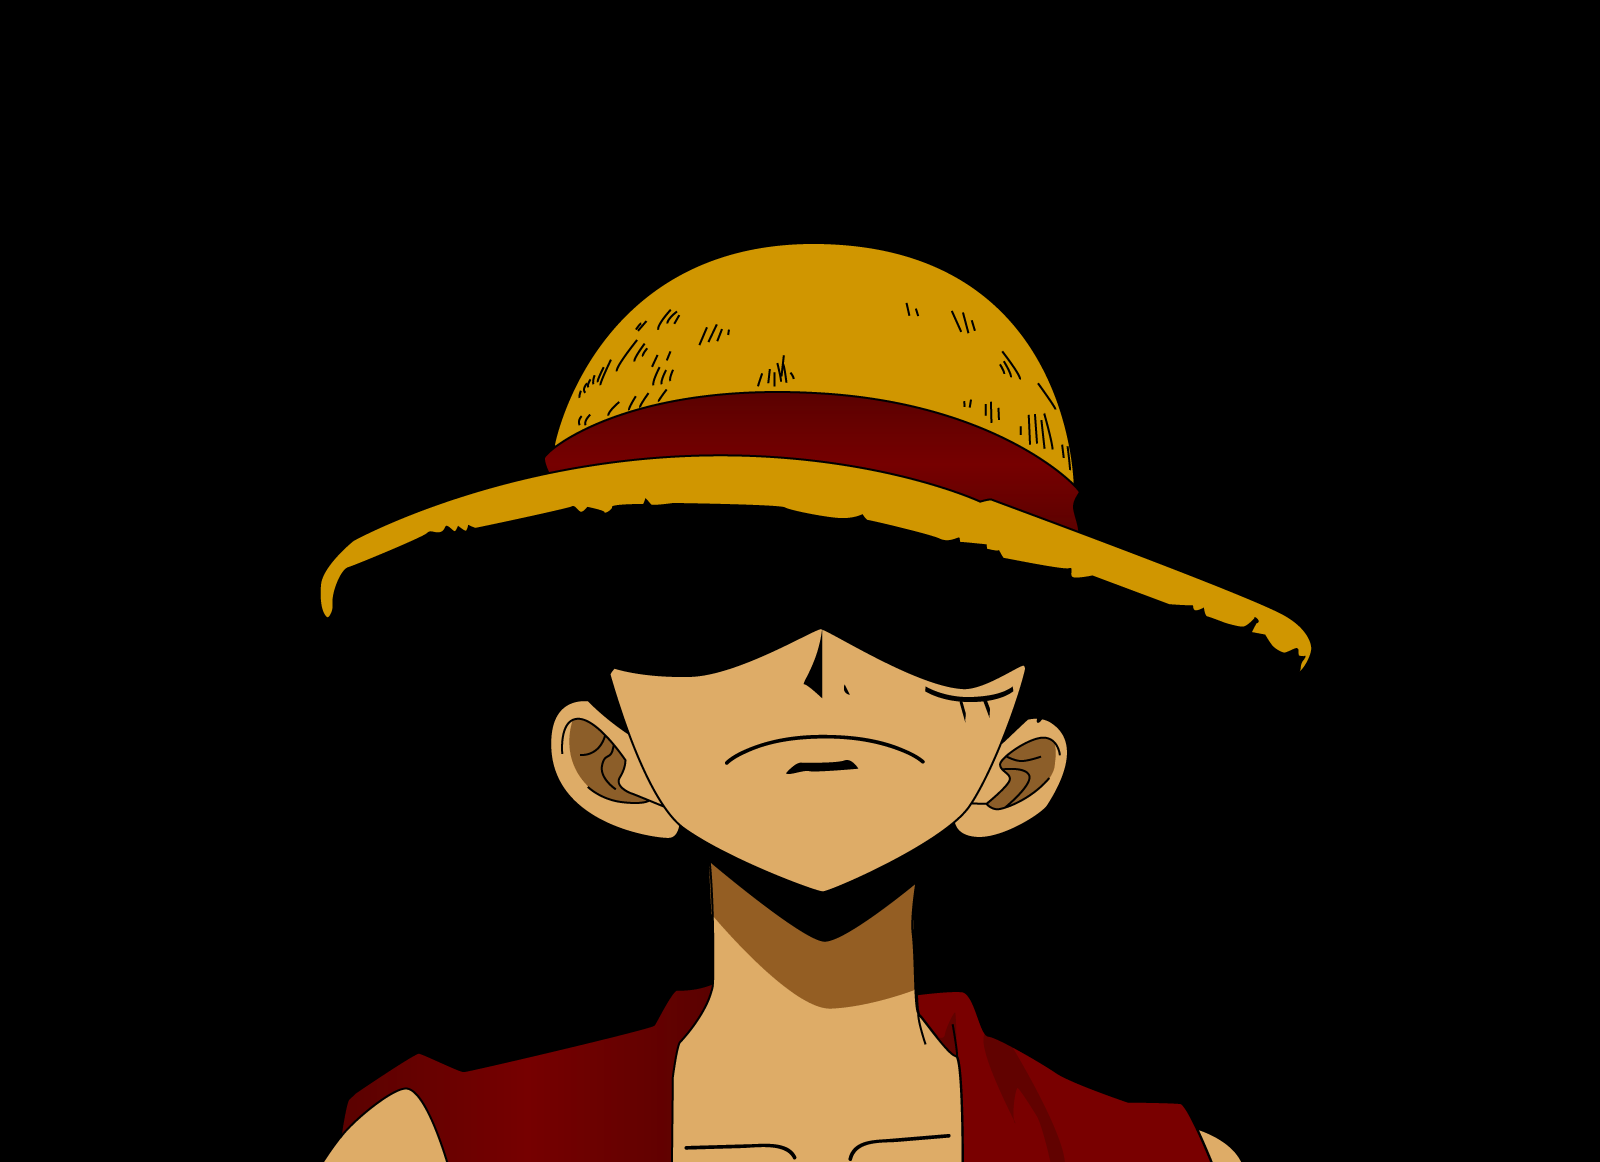 One Piece Luffy Wallpapers - Wallpaper Cave